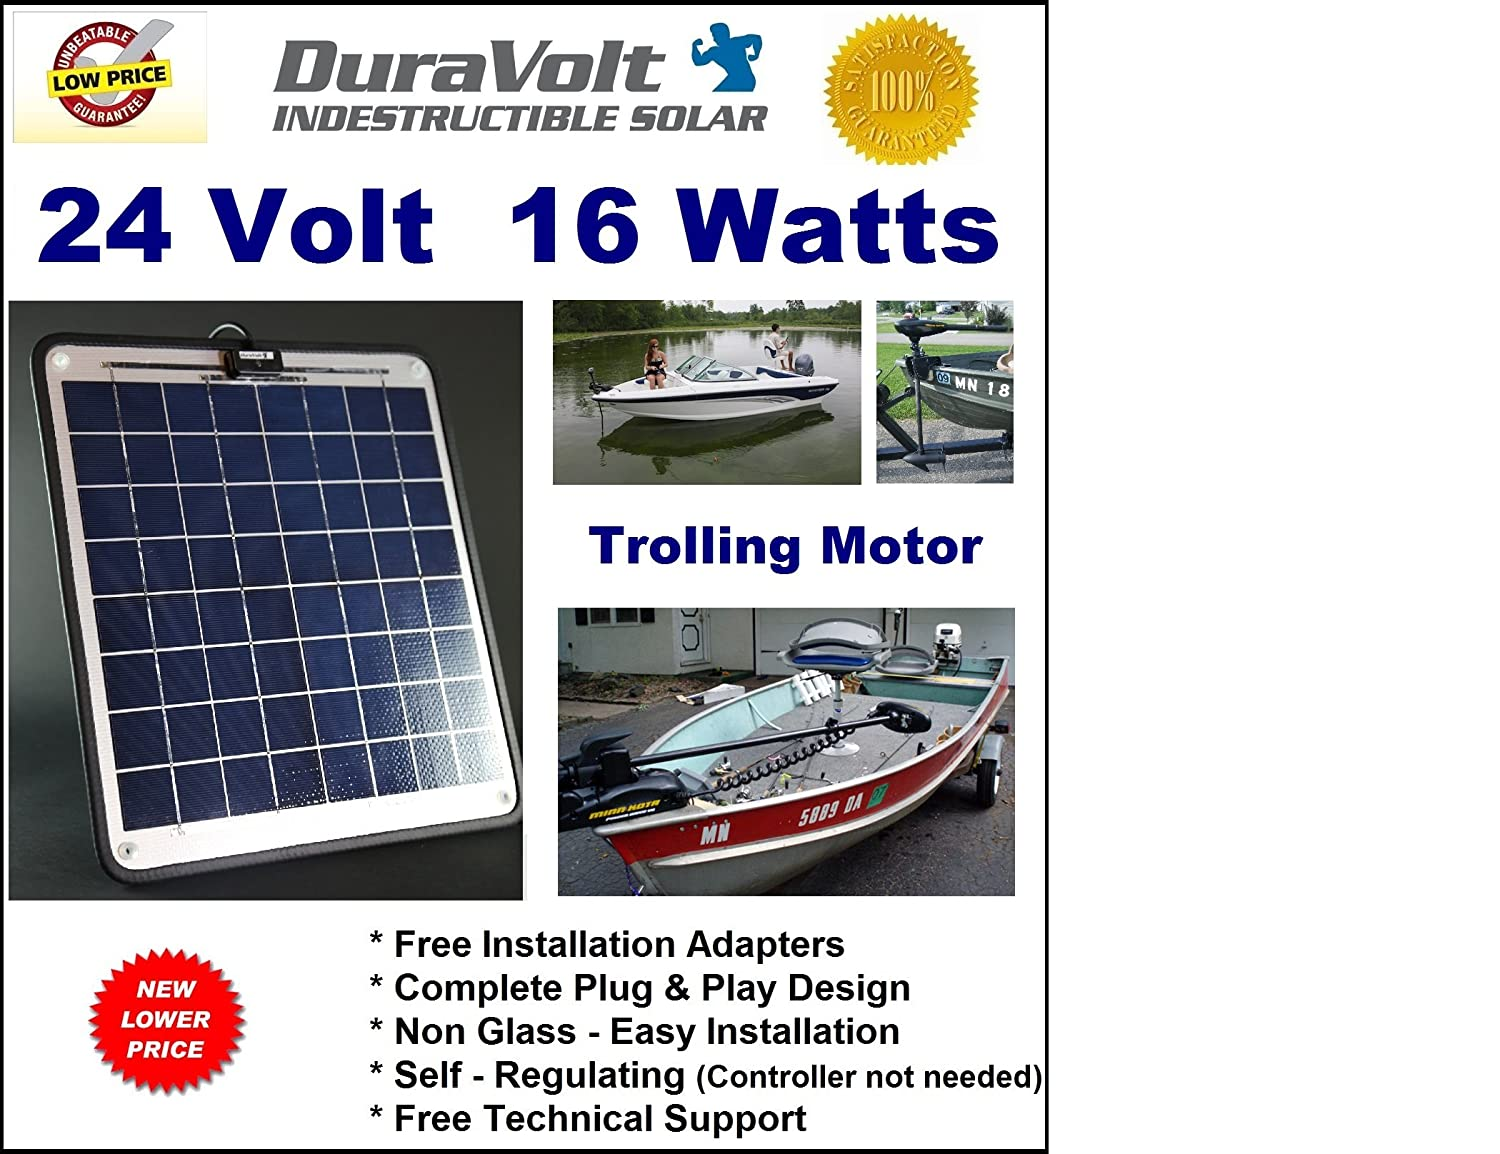 Now 20 Watts Trolling Motor 24v Battery Charger 1 2 Marine Solar Panel Wiring Diagram Amp Trickle Self Regulating Boat No Experience Plug Play Design